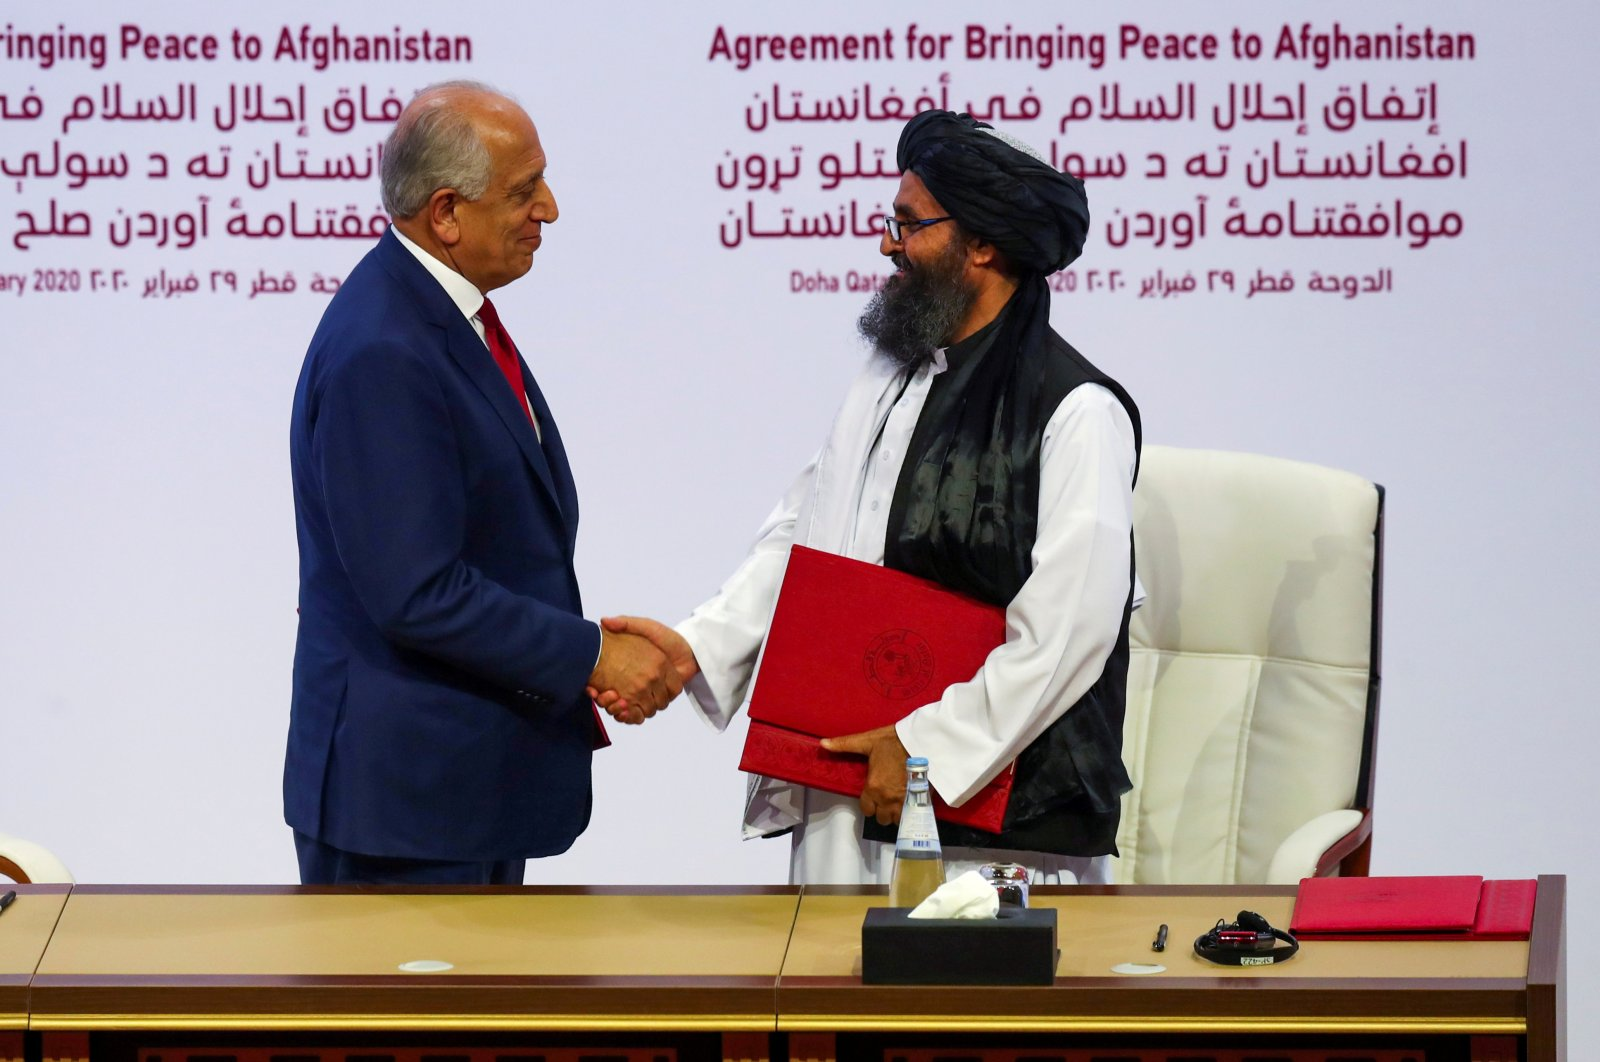 Mullah Abdul Ghani Baradar, the leader of the Taliban delegation, and Zalmay Khalilzad, U.S. envoy for peace in Afghanistan, shake hands after signing an agreement at a ceremony between members of Afghanistan's Taliban and the U.S. in Doha, Qatar on Feb. 29, 2020. (Reuters Photo)